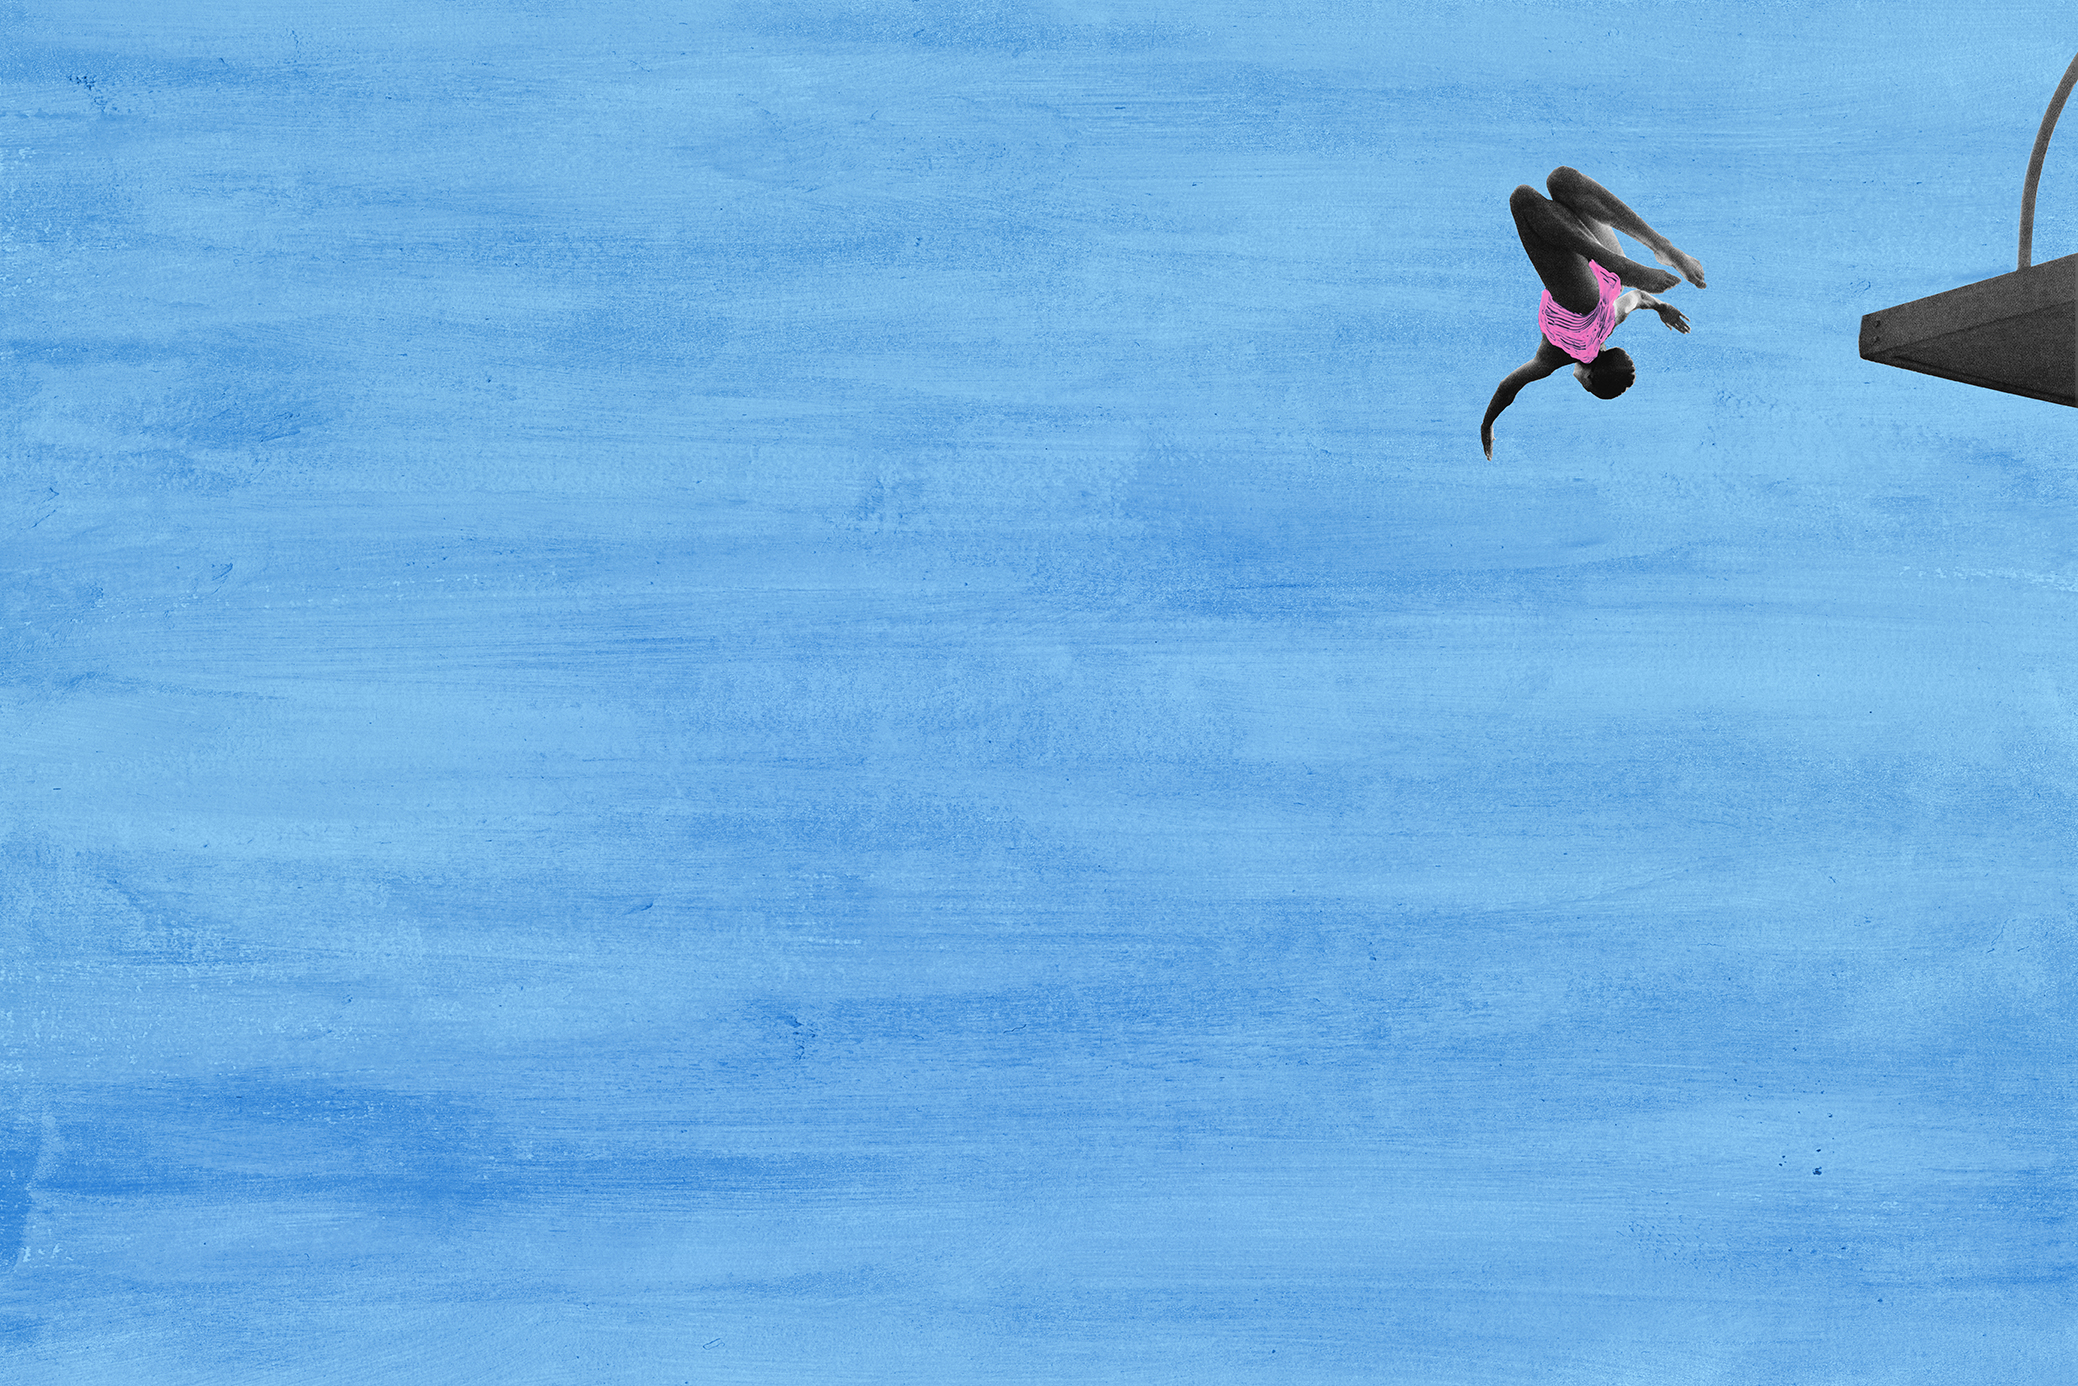 Photograph of woman in mid-air diving from platform combined with graphic paint strokes